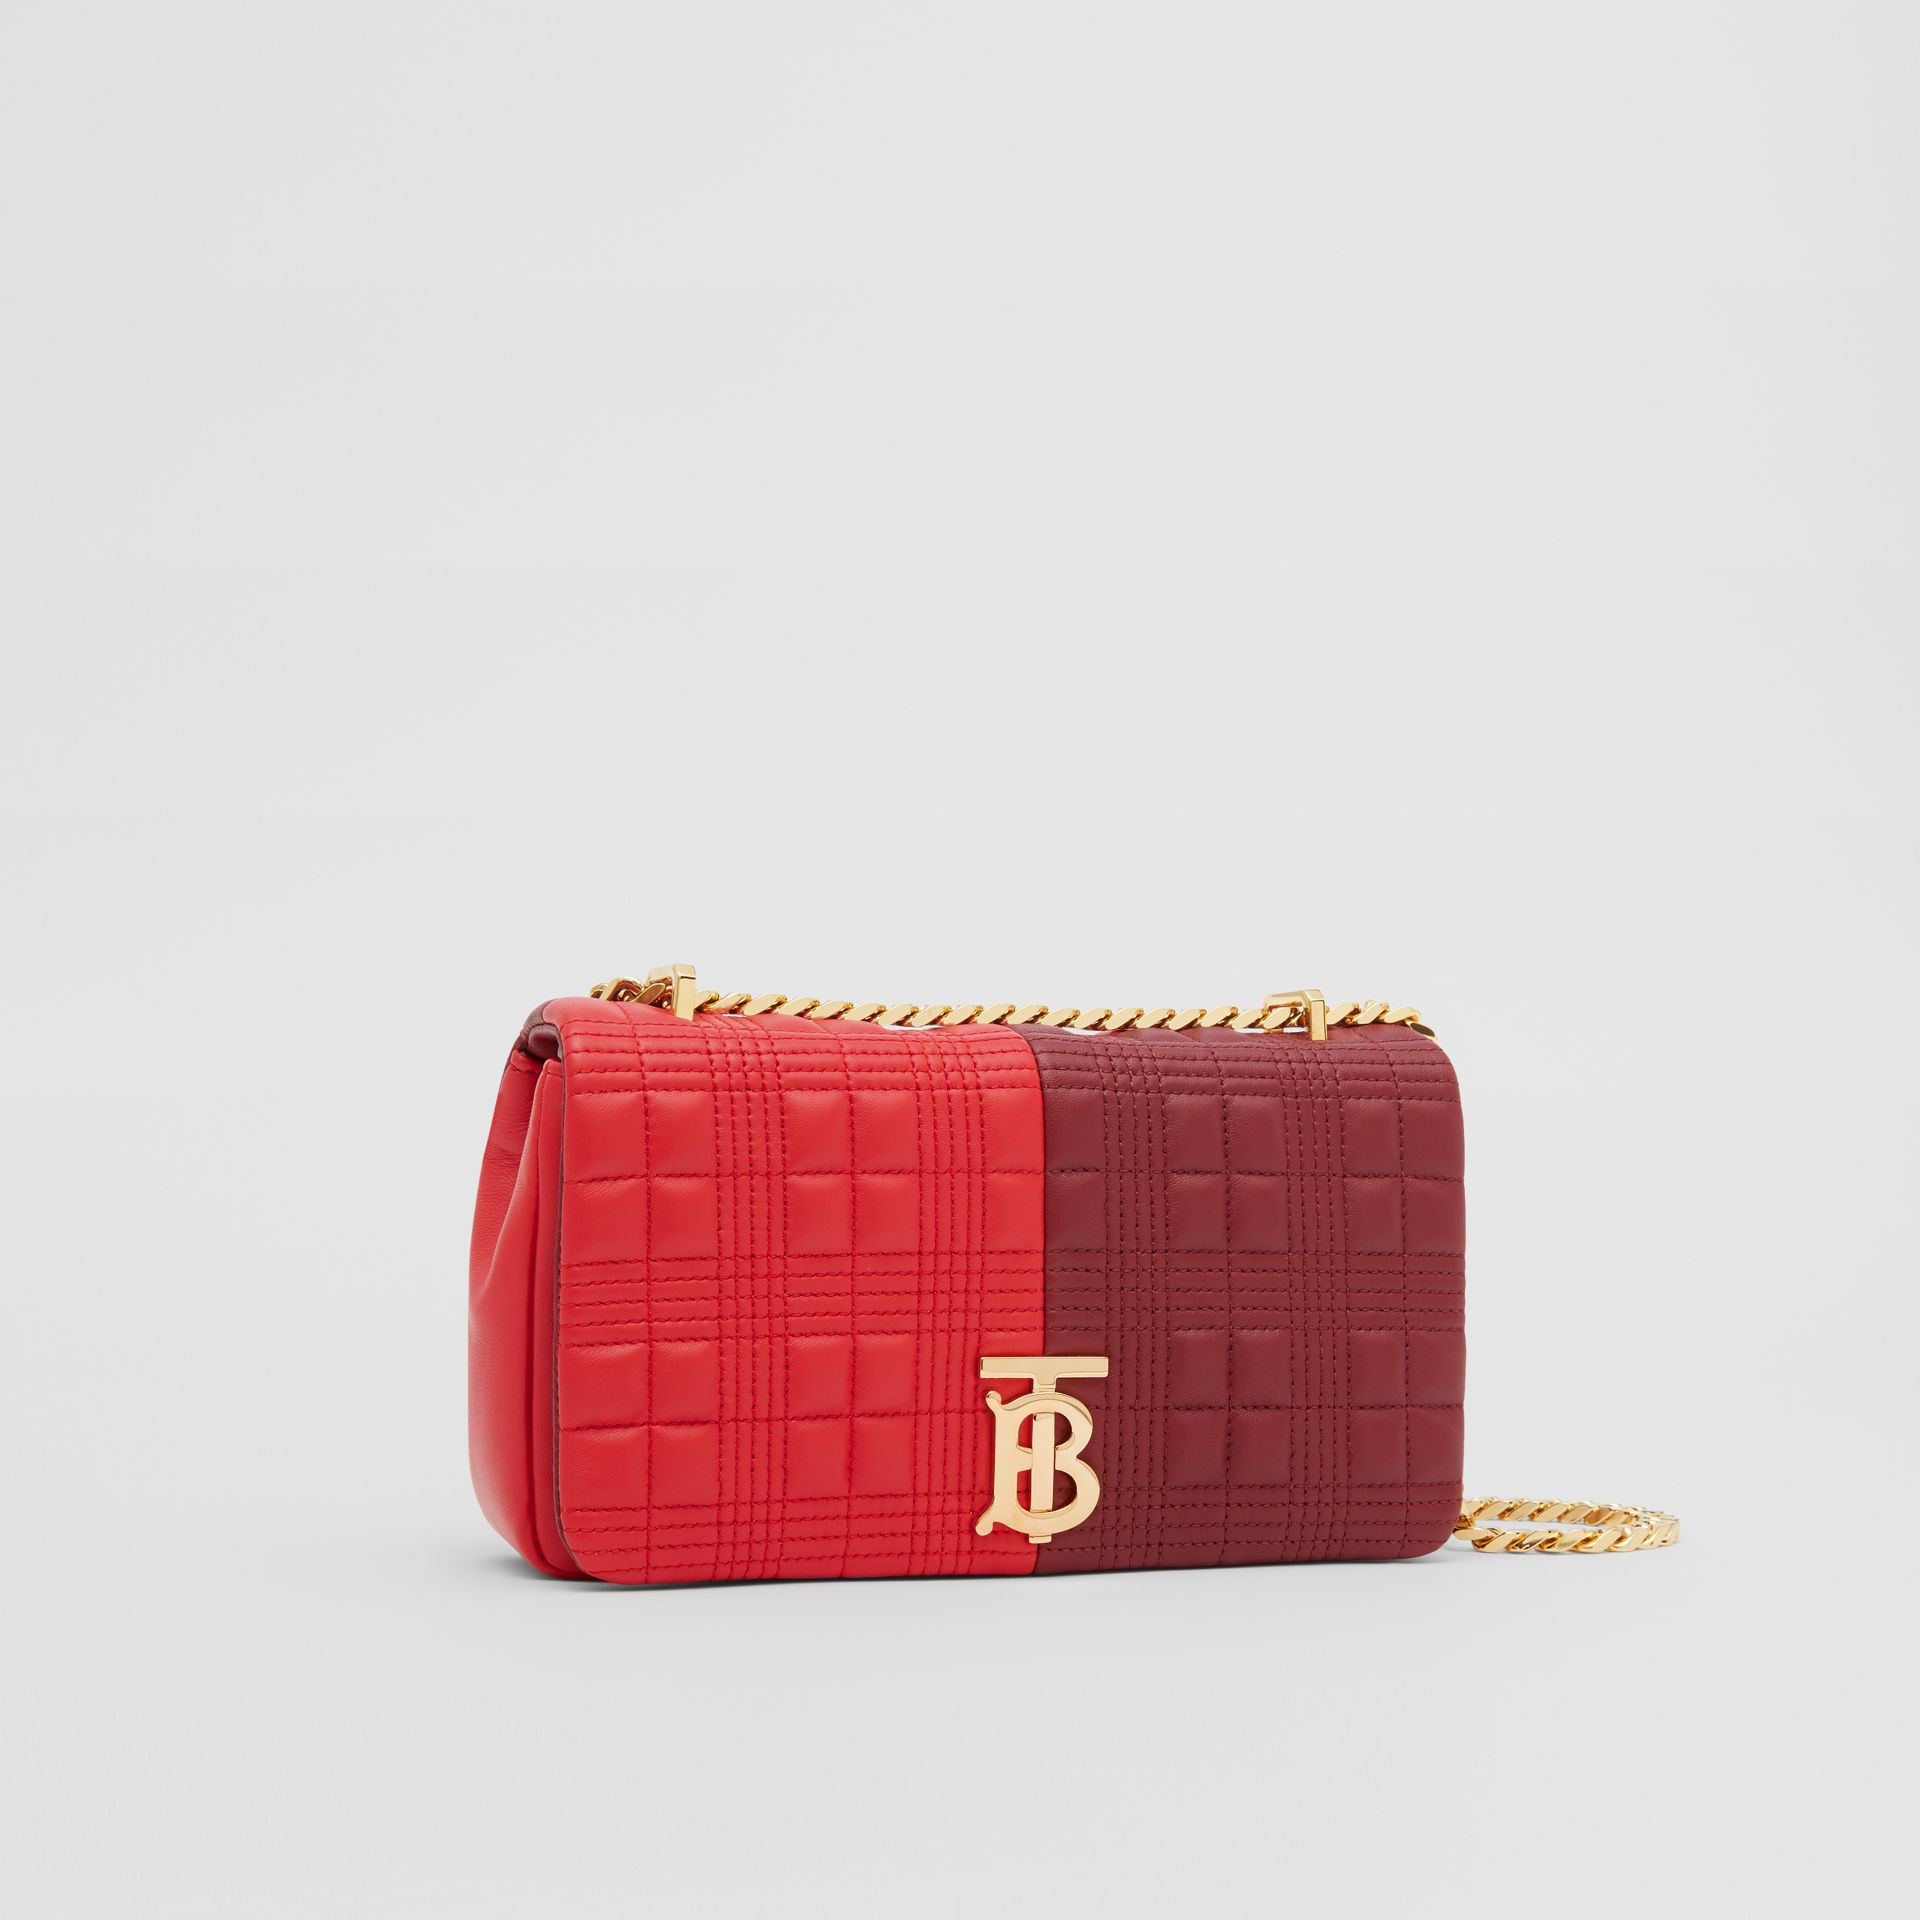 Small Quilted Colour Block Lambskin Lola Bag in Bright Red/burgundy - Women | Burberry - gallery image 6